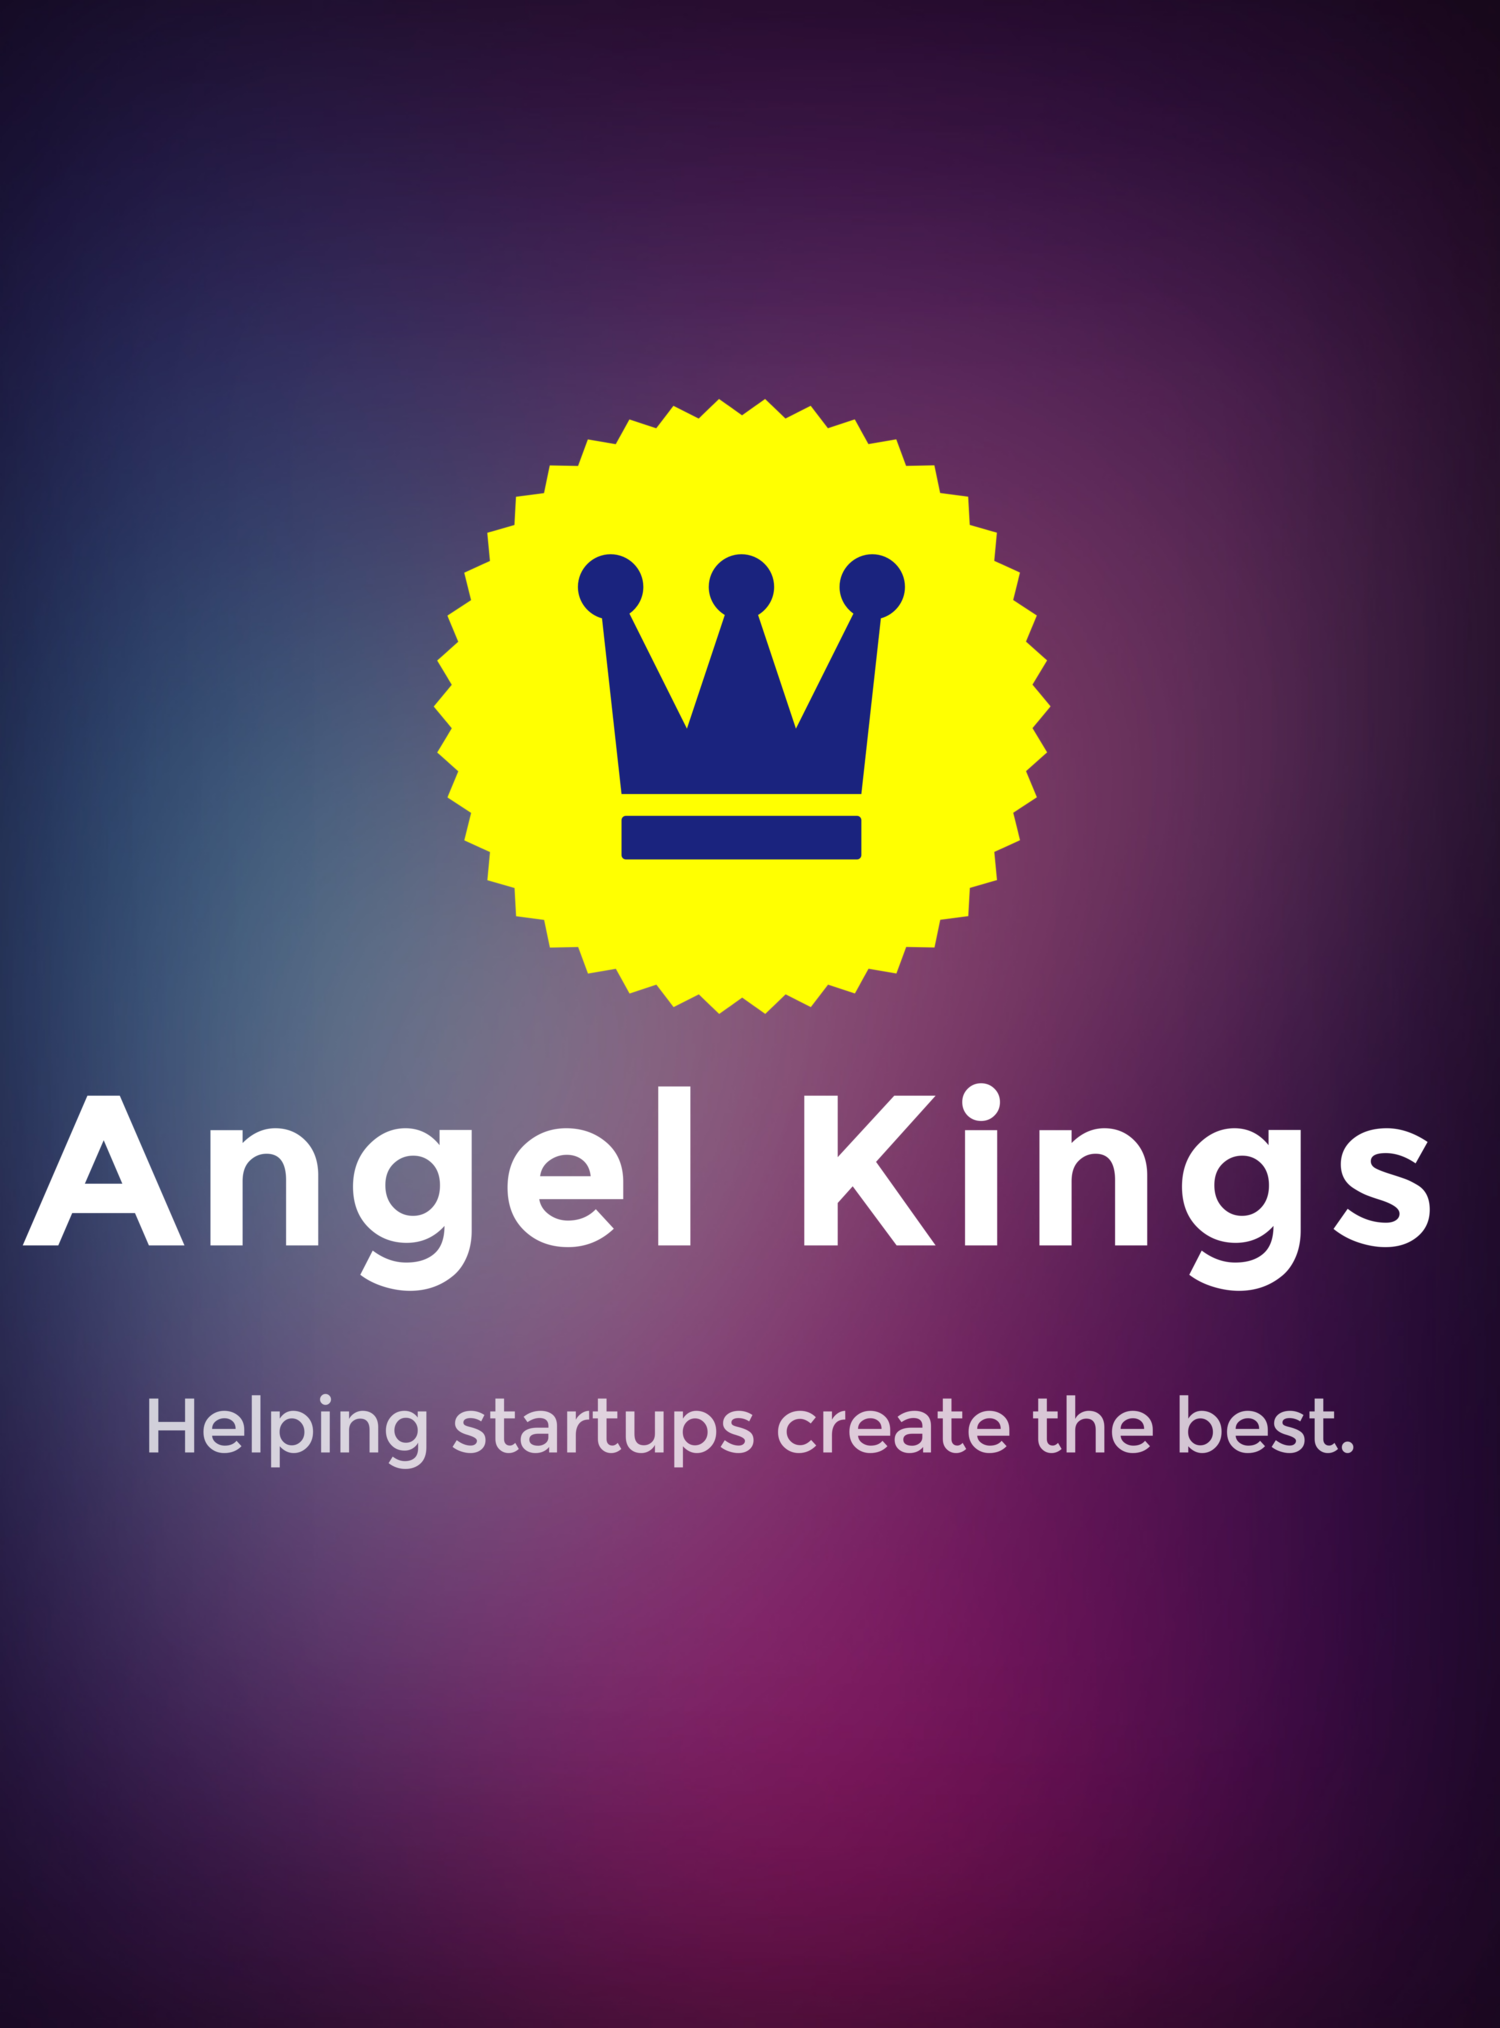 Angel Kings | We Design, Build & Launch America's Top Startups